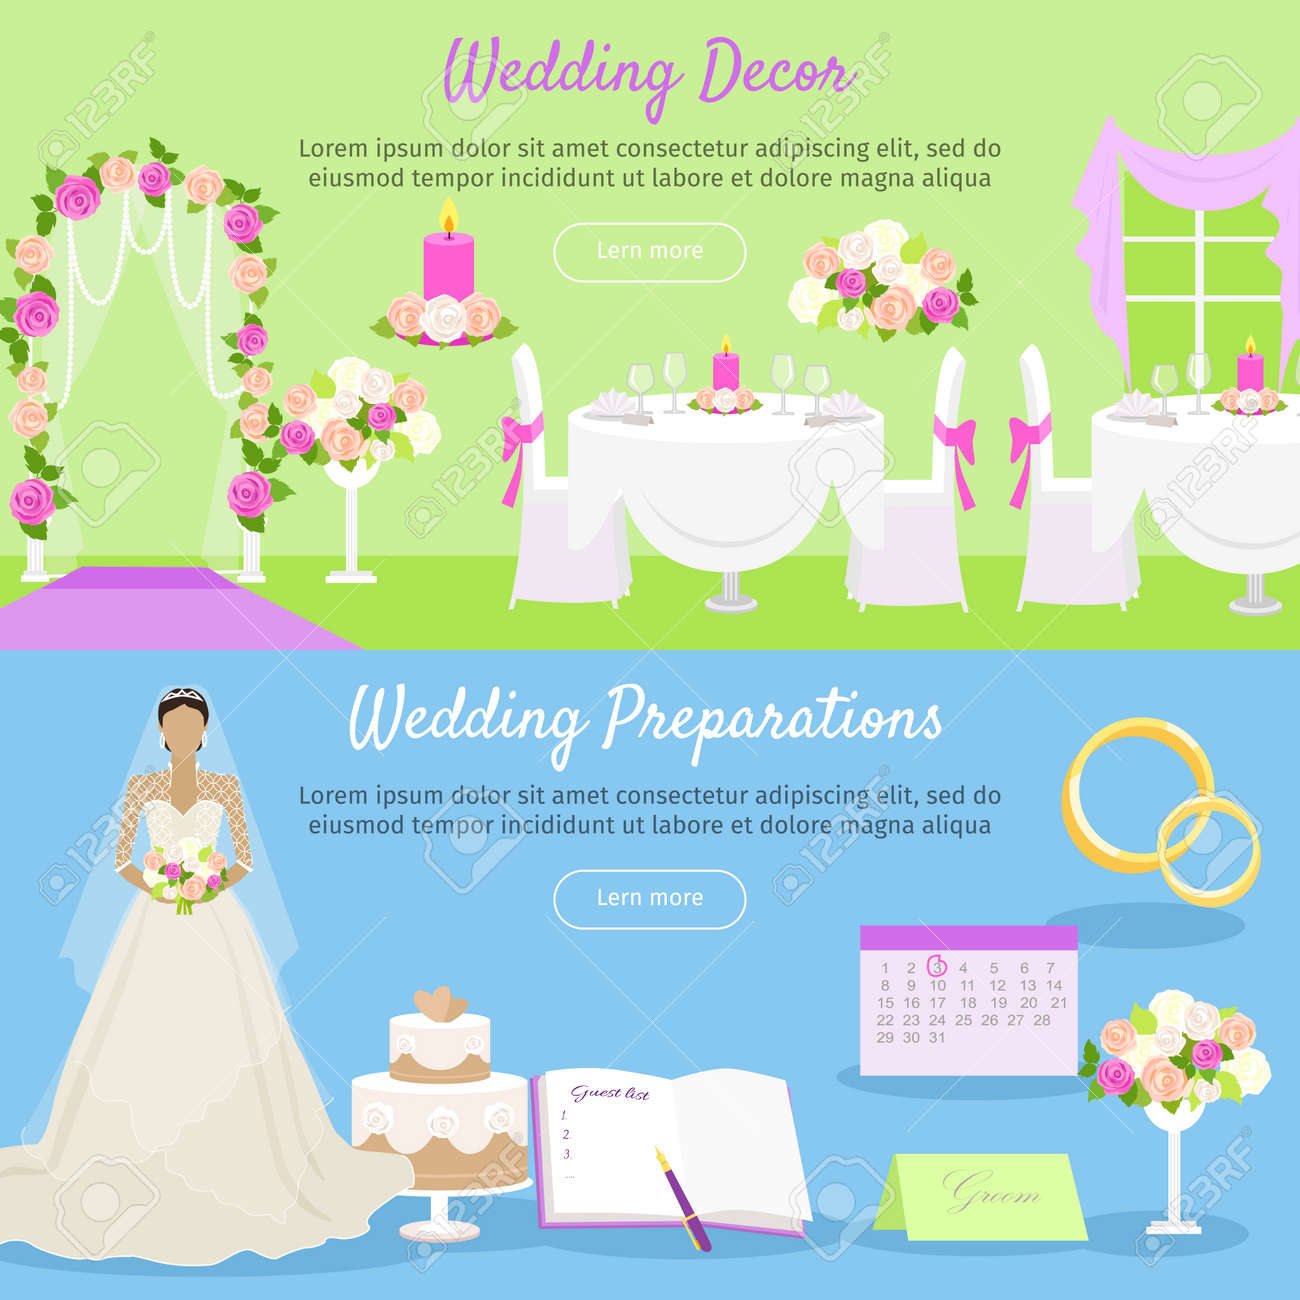 Wedding decor and wedding preparations web banner planning the vector wedding decor and wedding preparations web banner planning the wedding day getting ready to marriage ceremony getting ready everything ahead junglespirit Gallery